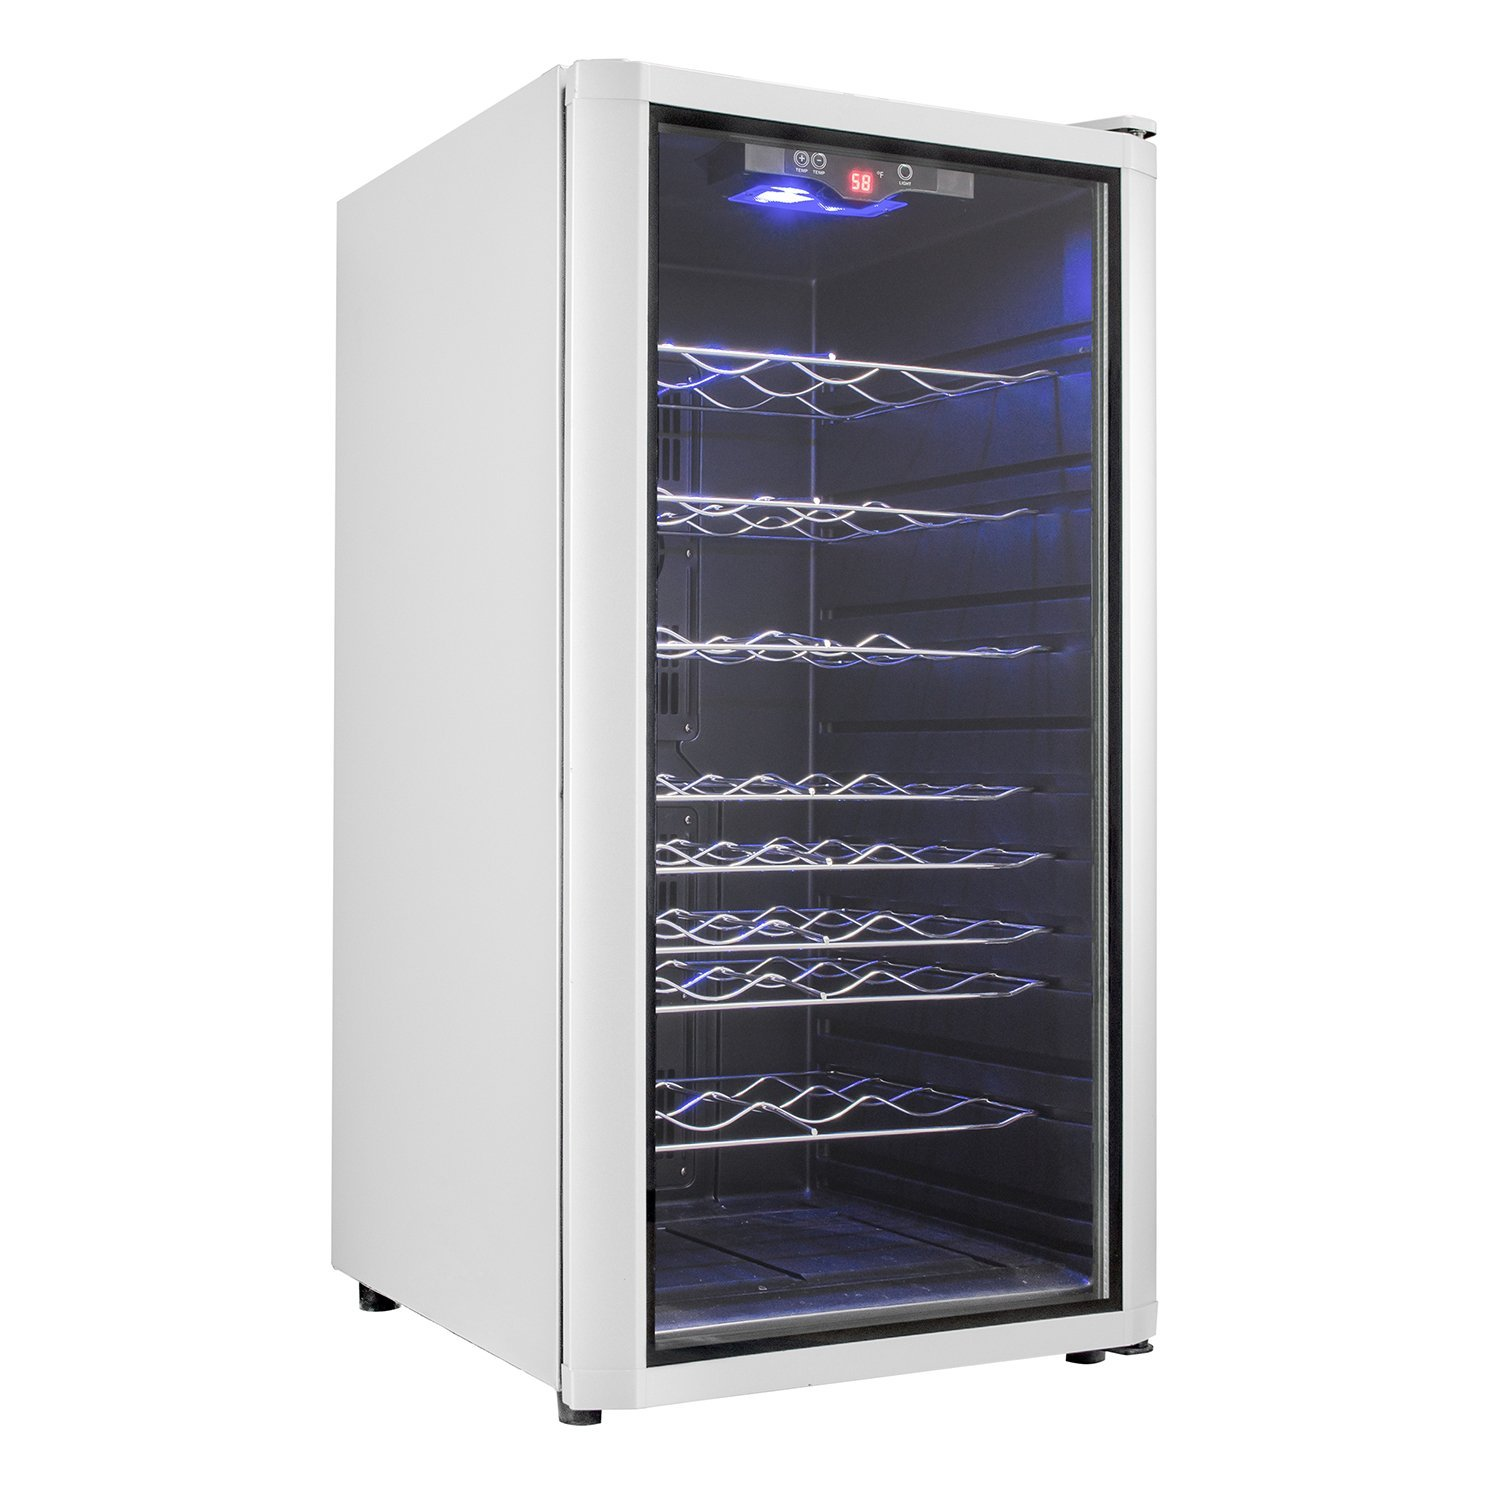 Akdy Az31ec Electronic Wine Cooler Adjustable Control 32